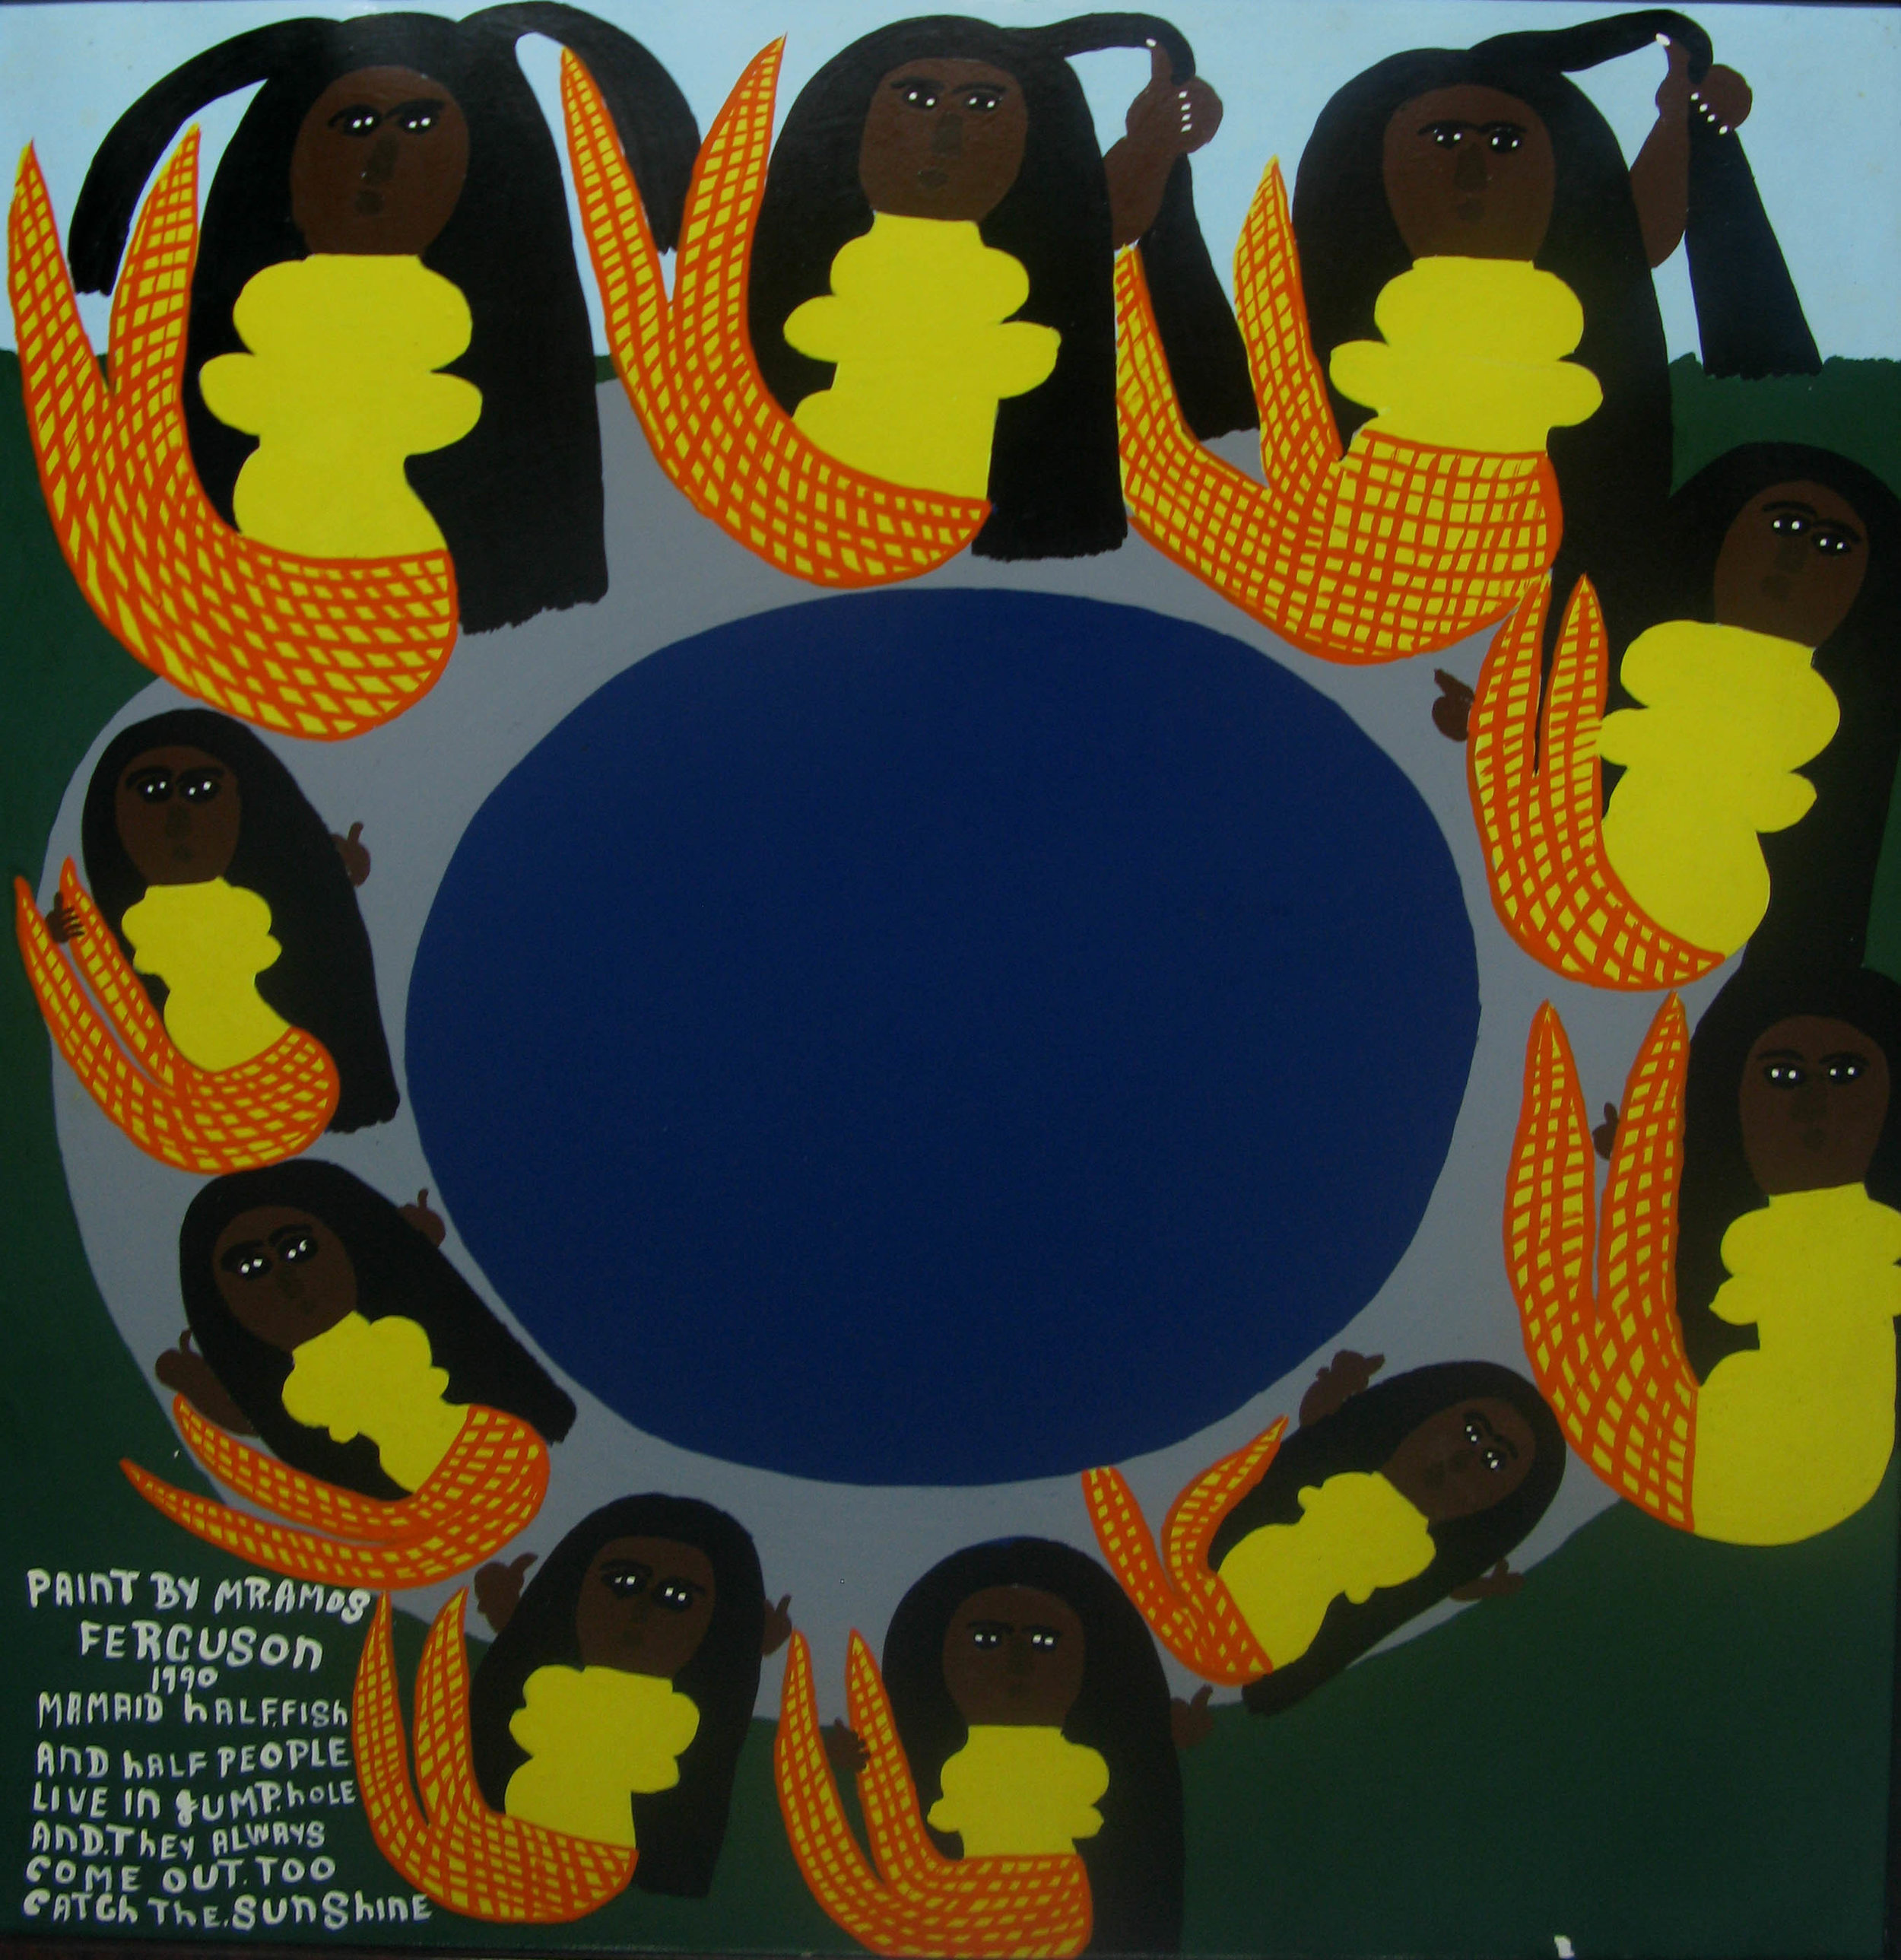 """Mamaid Half Fish And Half People Live in Sump Hole And They Always Come Out Too Catch The Sunshine"" (1990), Amos Ferguson, house paint on board, 36 x 30. Part of the National Collection, donated by the Ministry of Tourism."